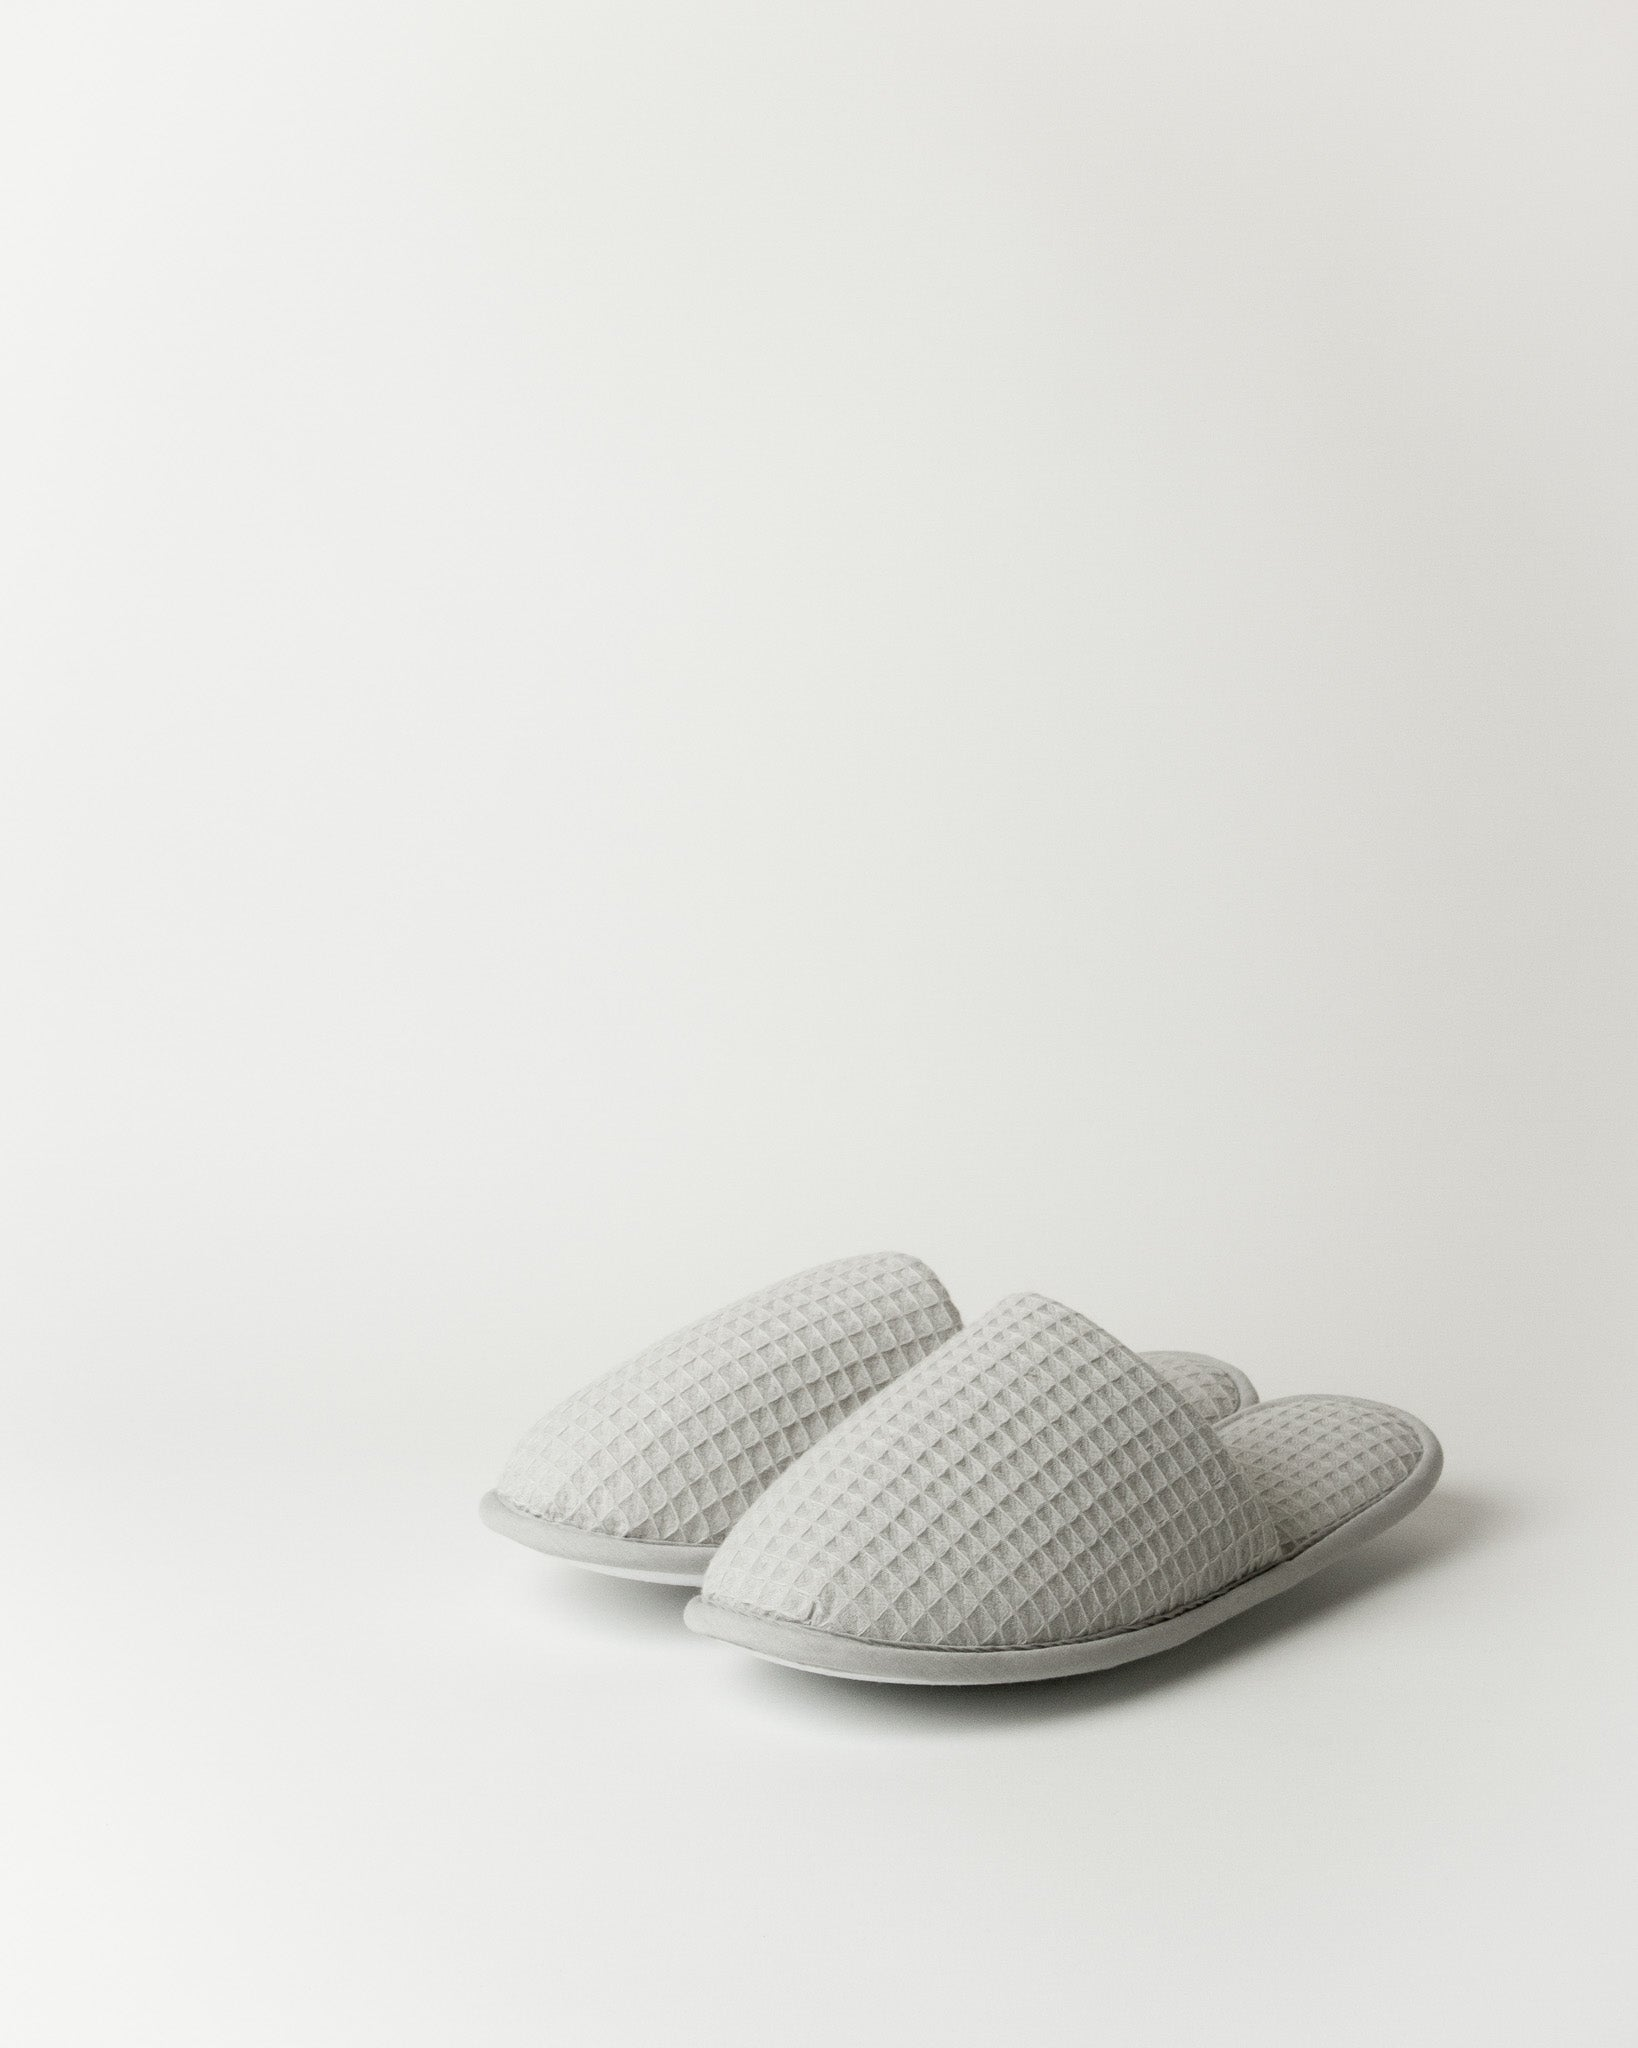 Waffle Slippers in Grey